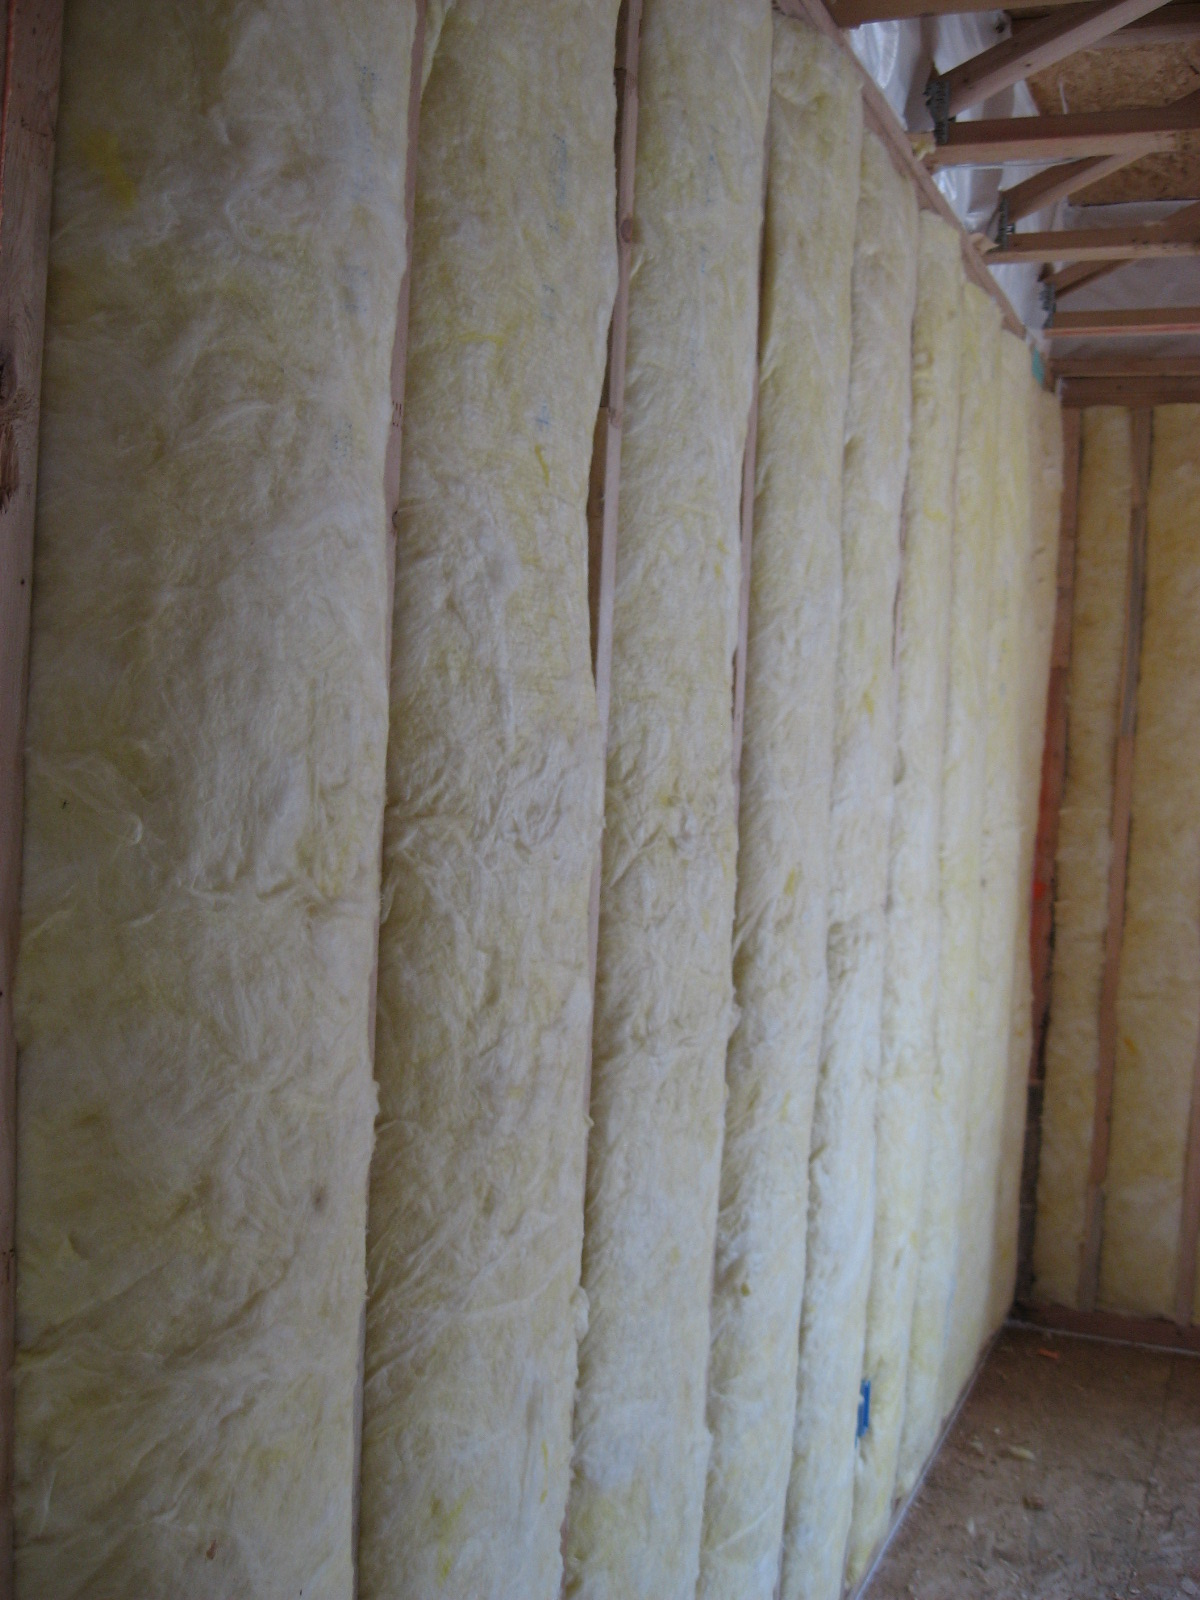 Unfaced fiberglass batt insulation is installed to completely fill the wall cavities